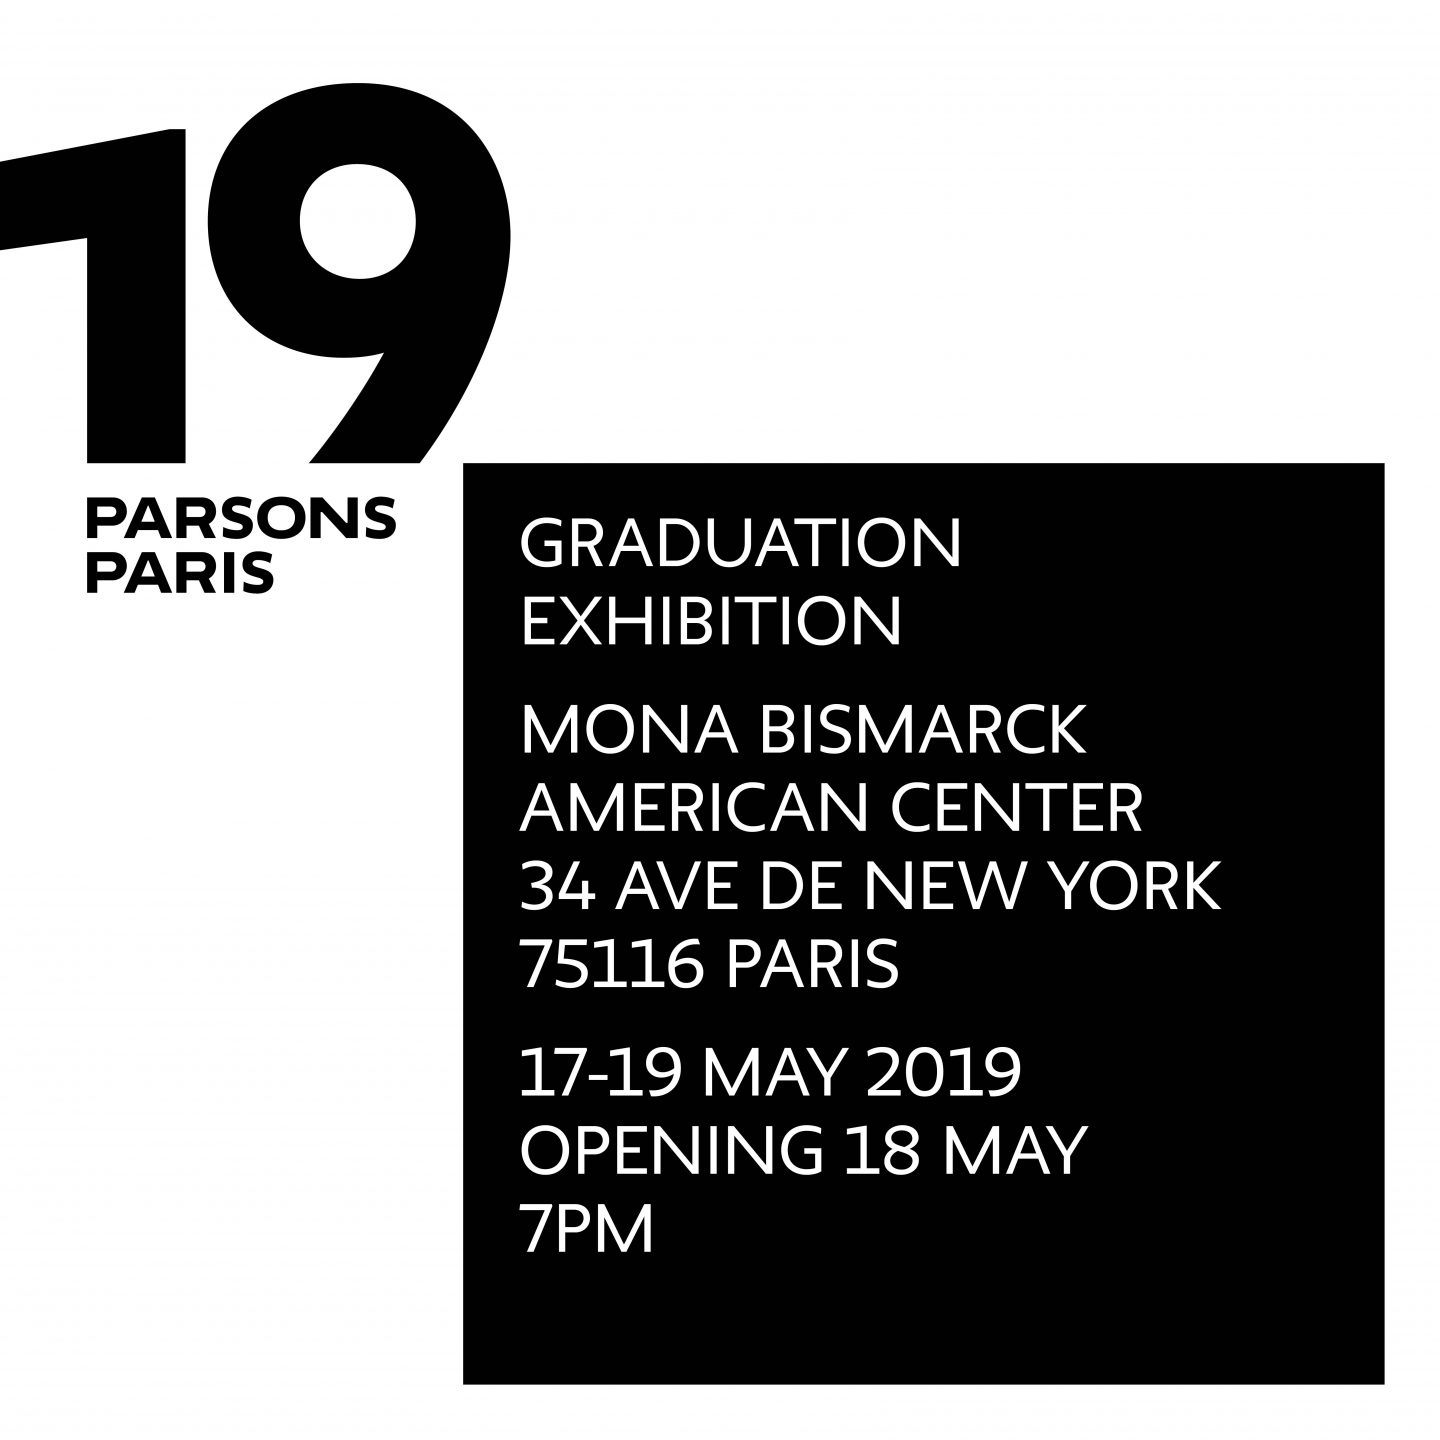 2019 Graduation Exhibition at the Mona Bismarck American Center